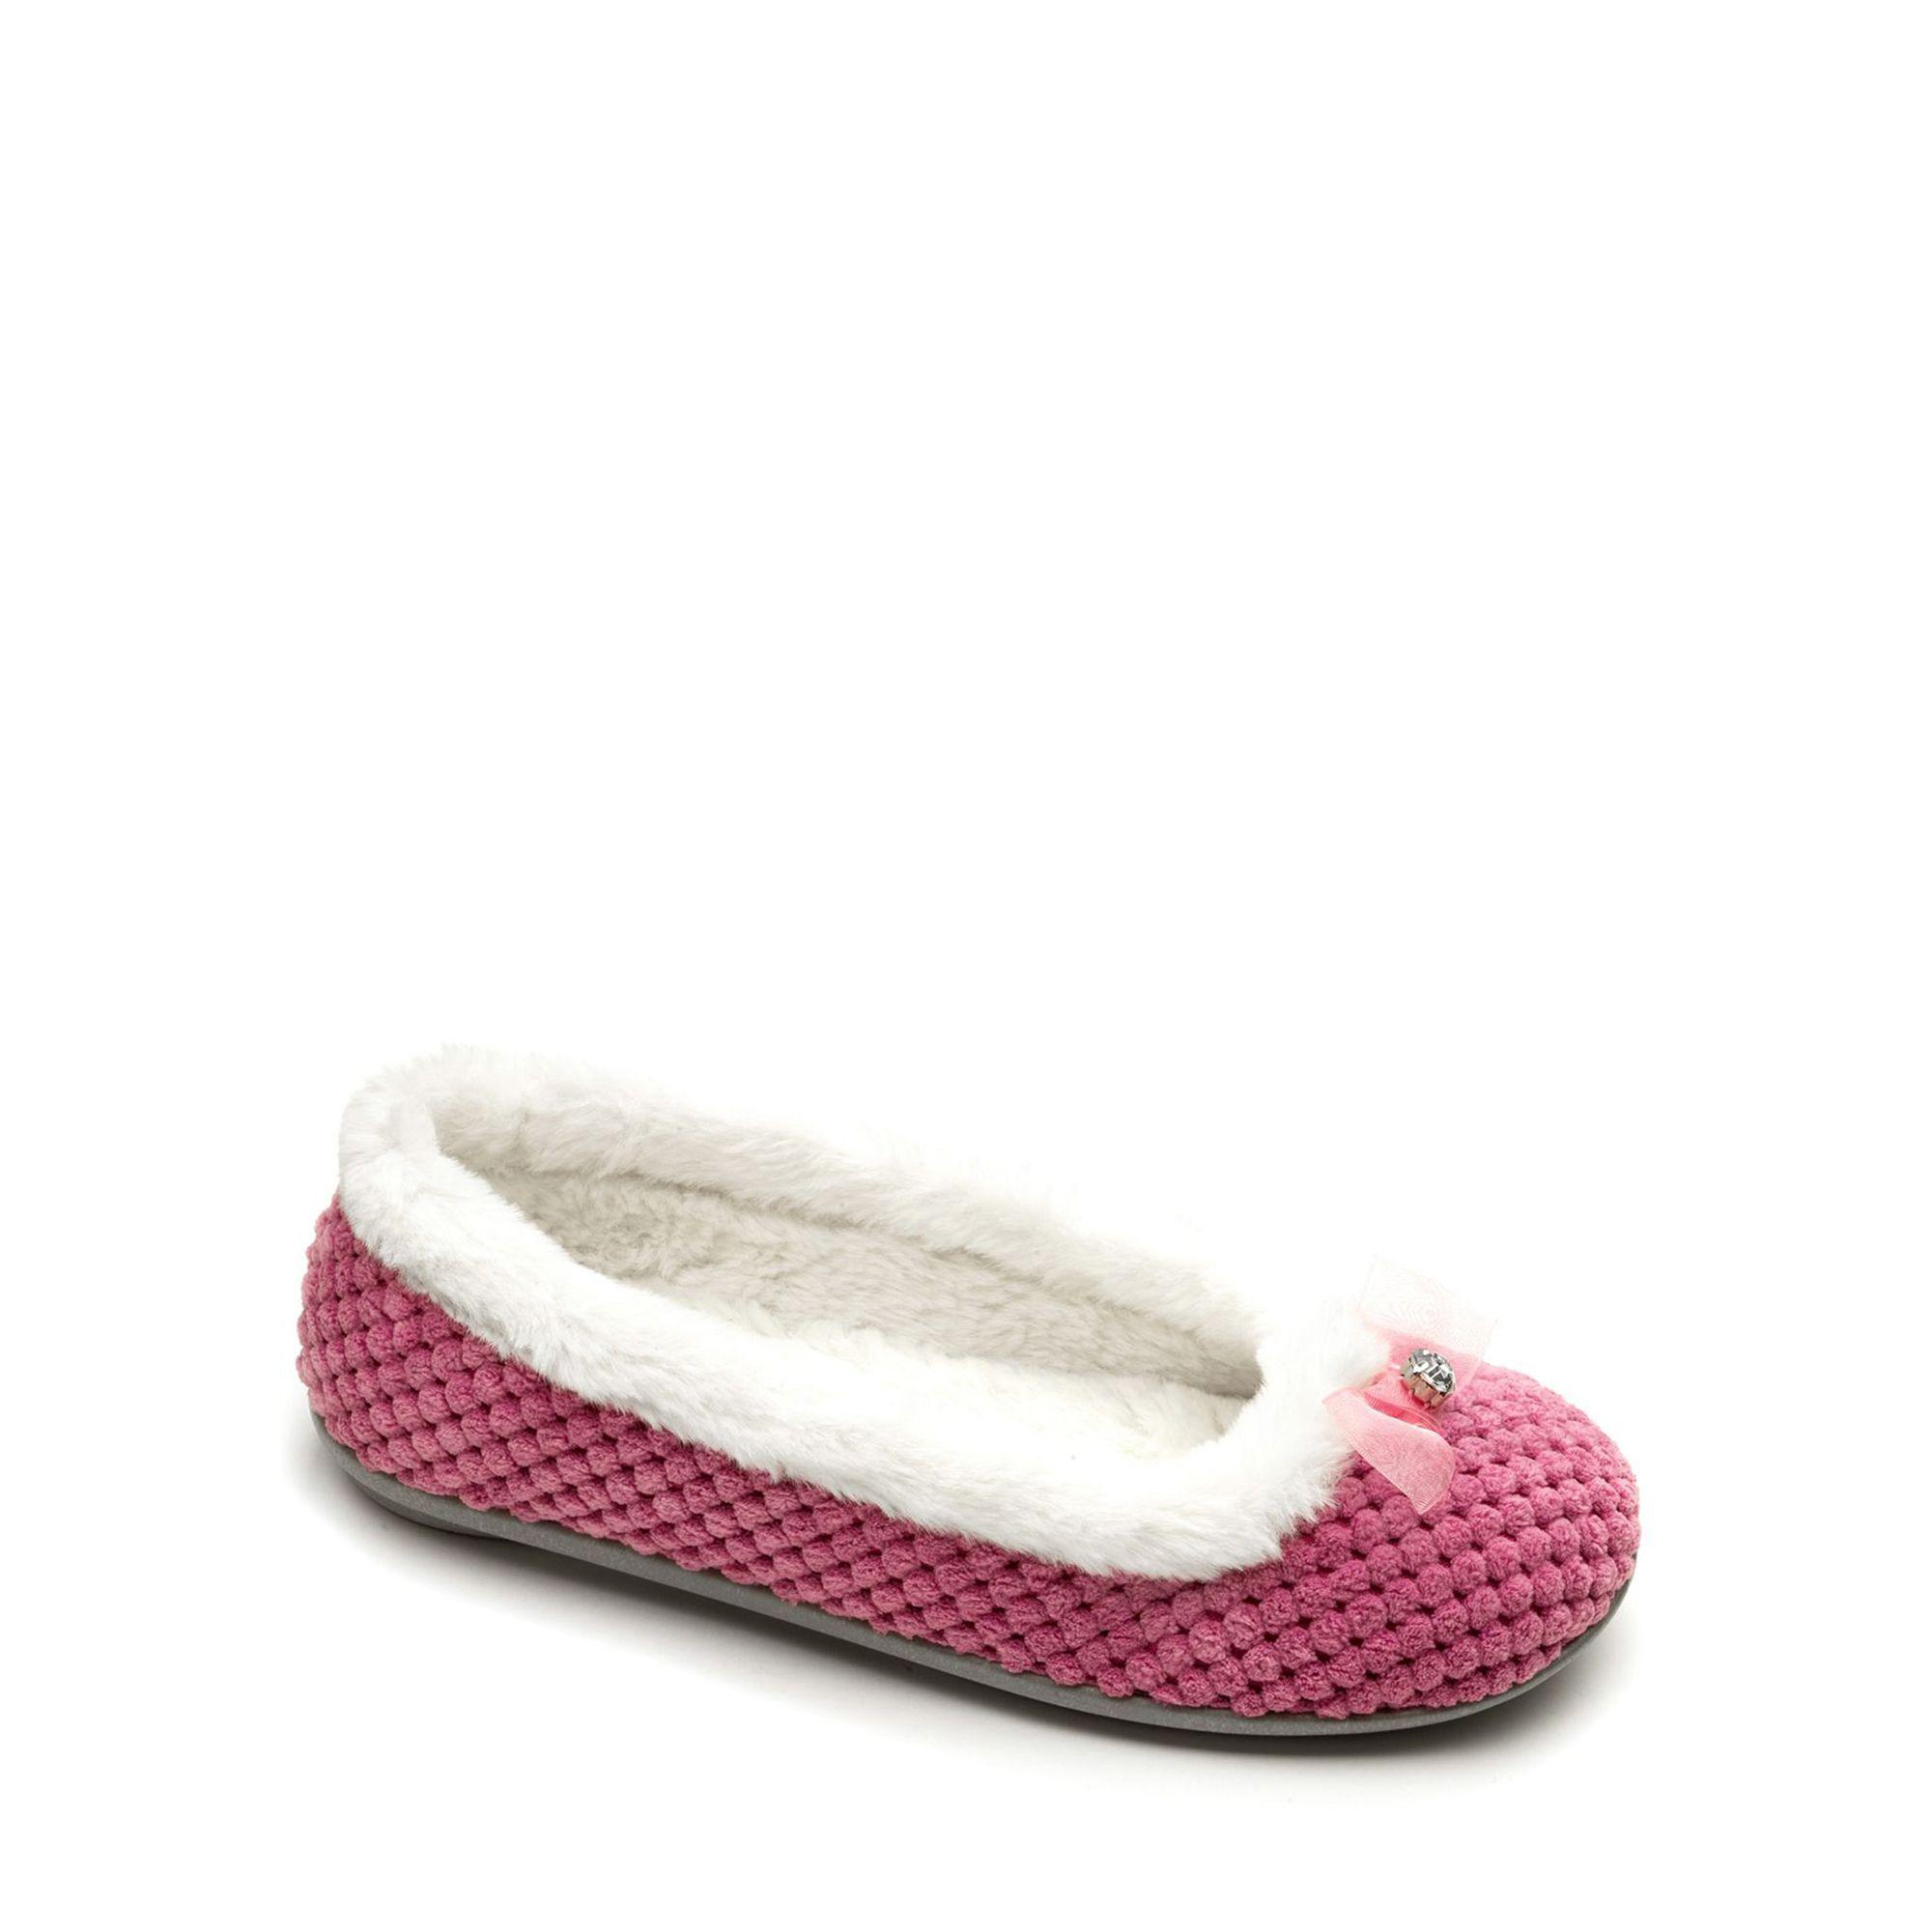 5d49aedc Freestep Pink Textile Ladies Slipper in Pink - Lyst